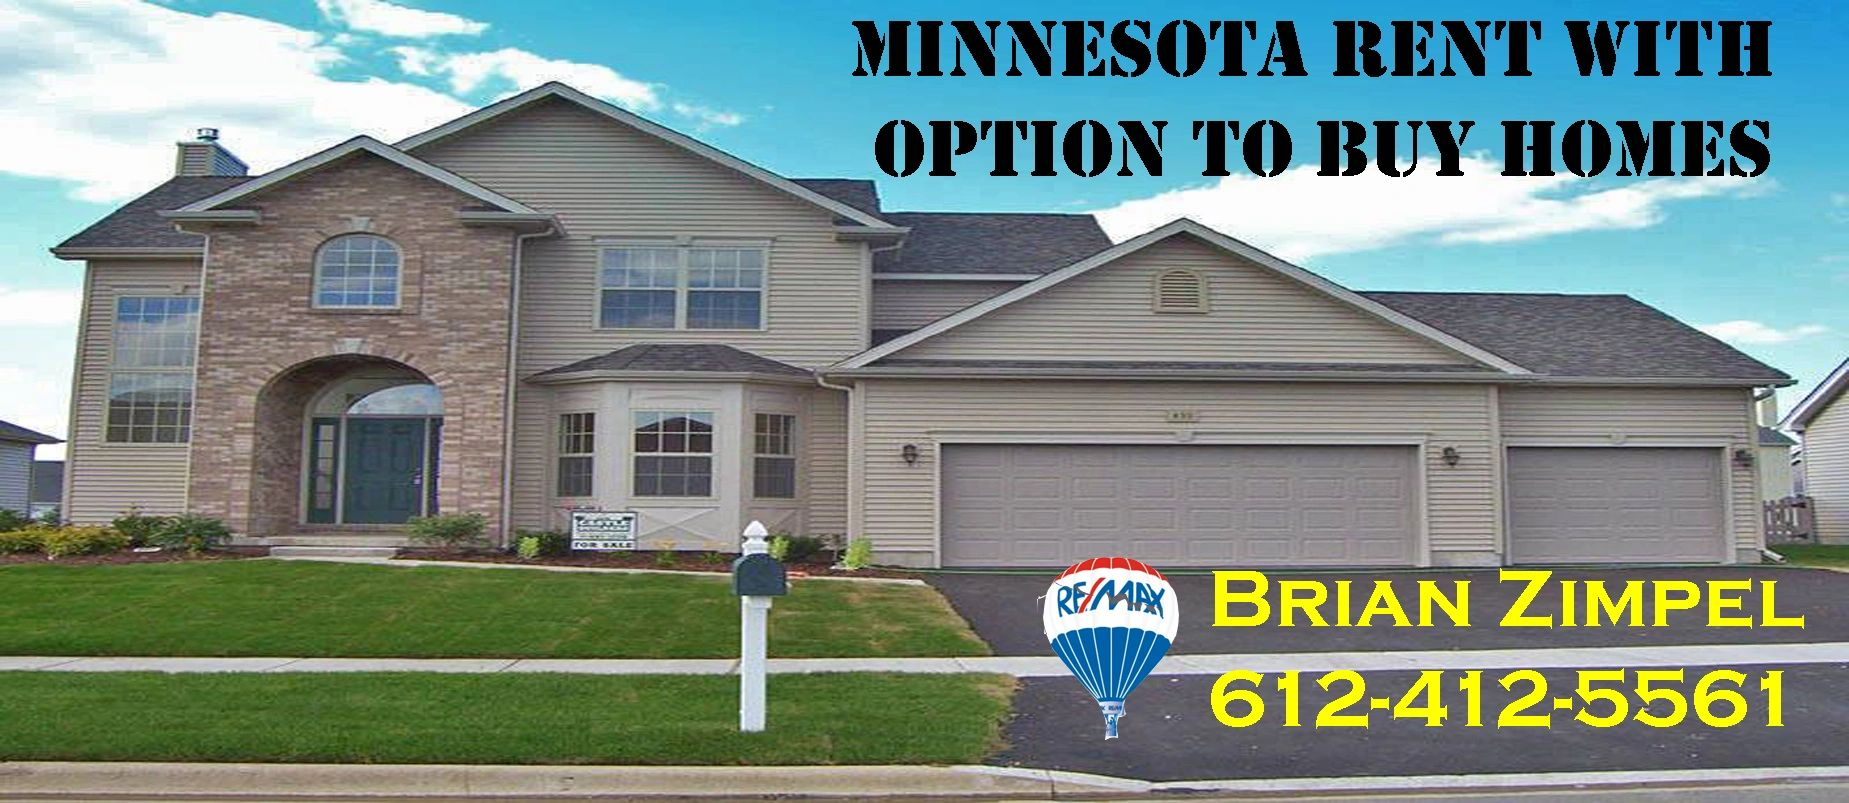 Minnesota Rental Homes, Brian Zimpel, Rent to Own Homes Minnesota, Home Partners of America, REMAX